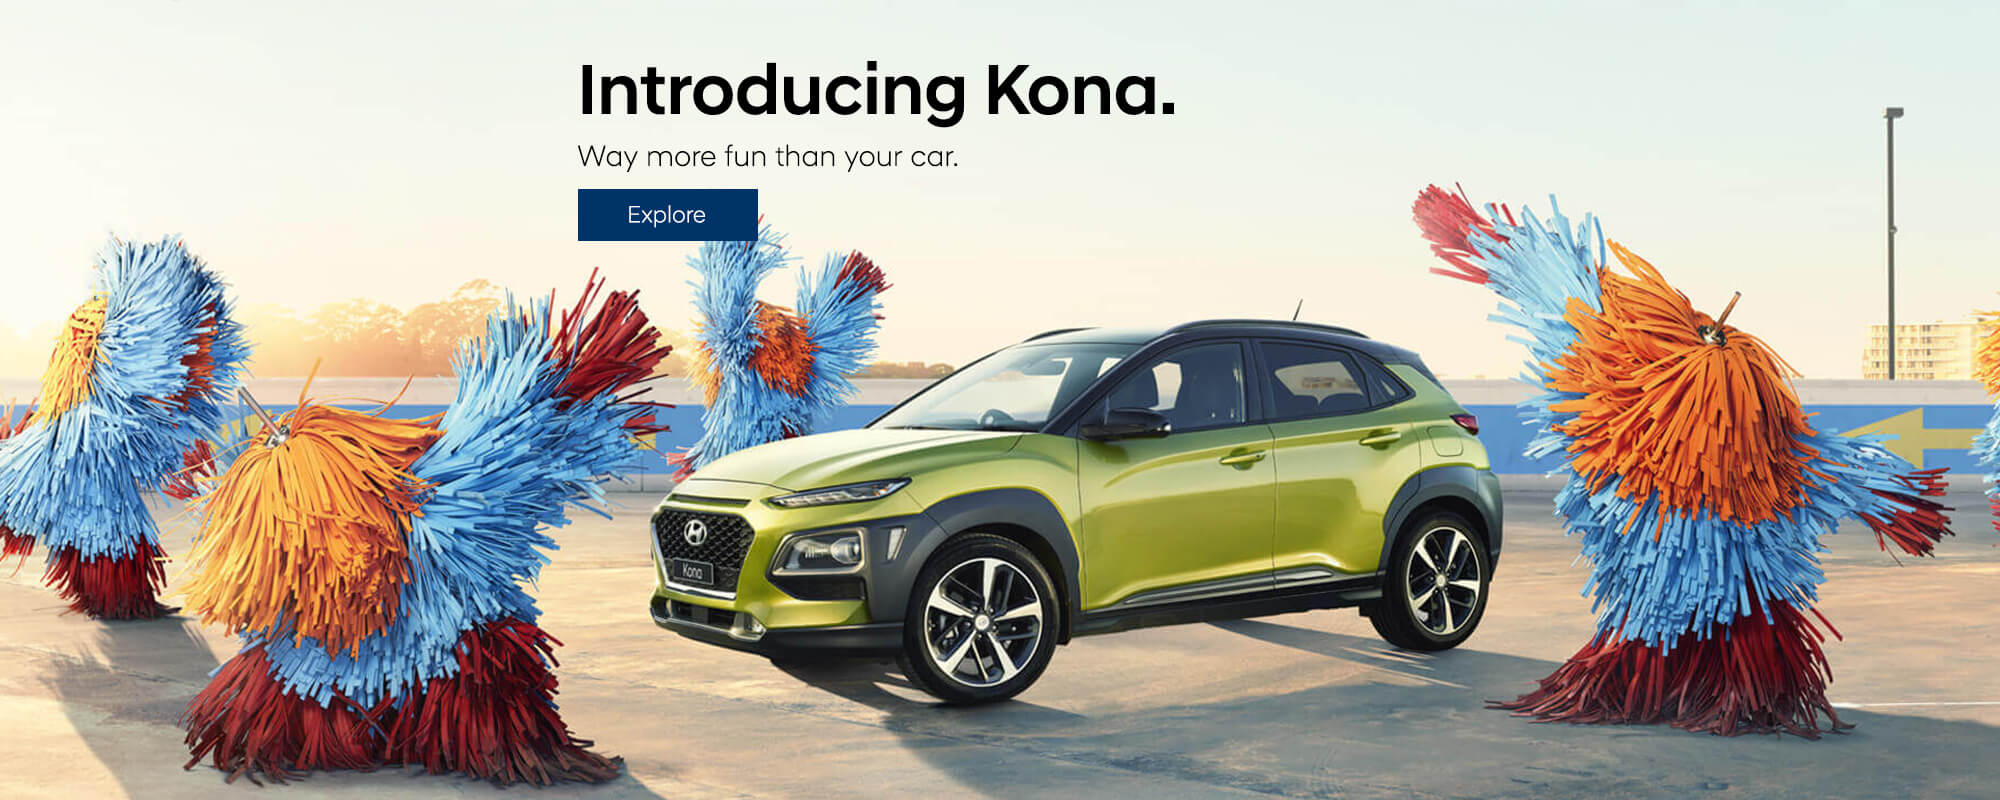 The All-New Kona